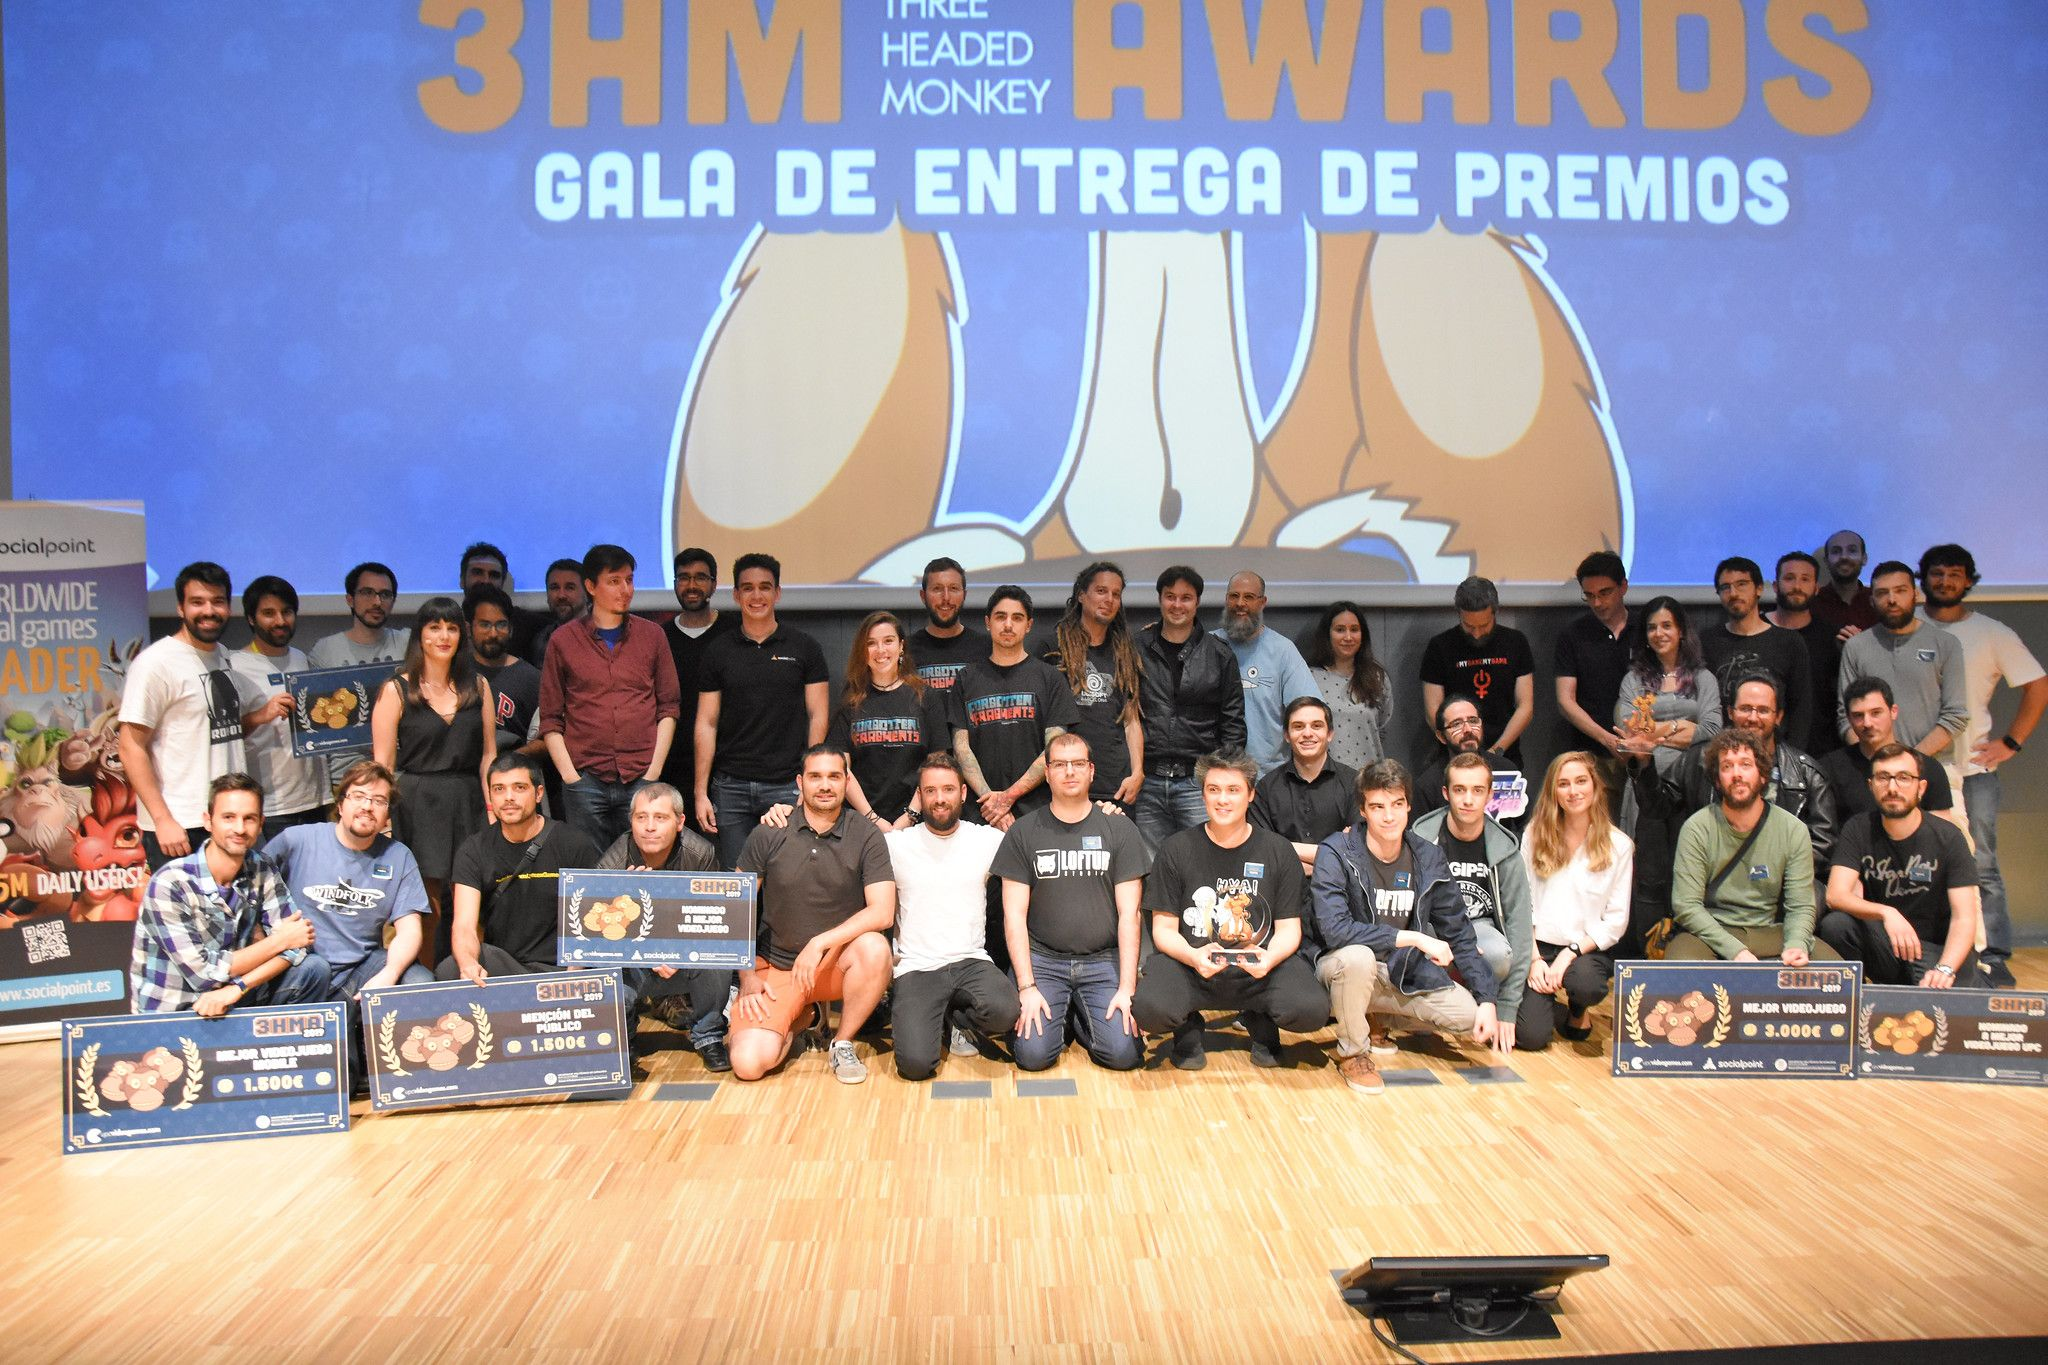 Concurso de videojuegos Three Headed Monkey Awards de la UPC School